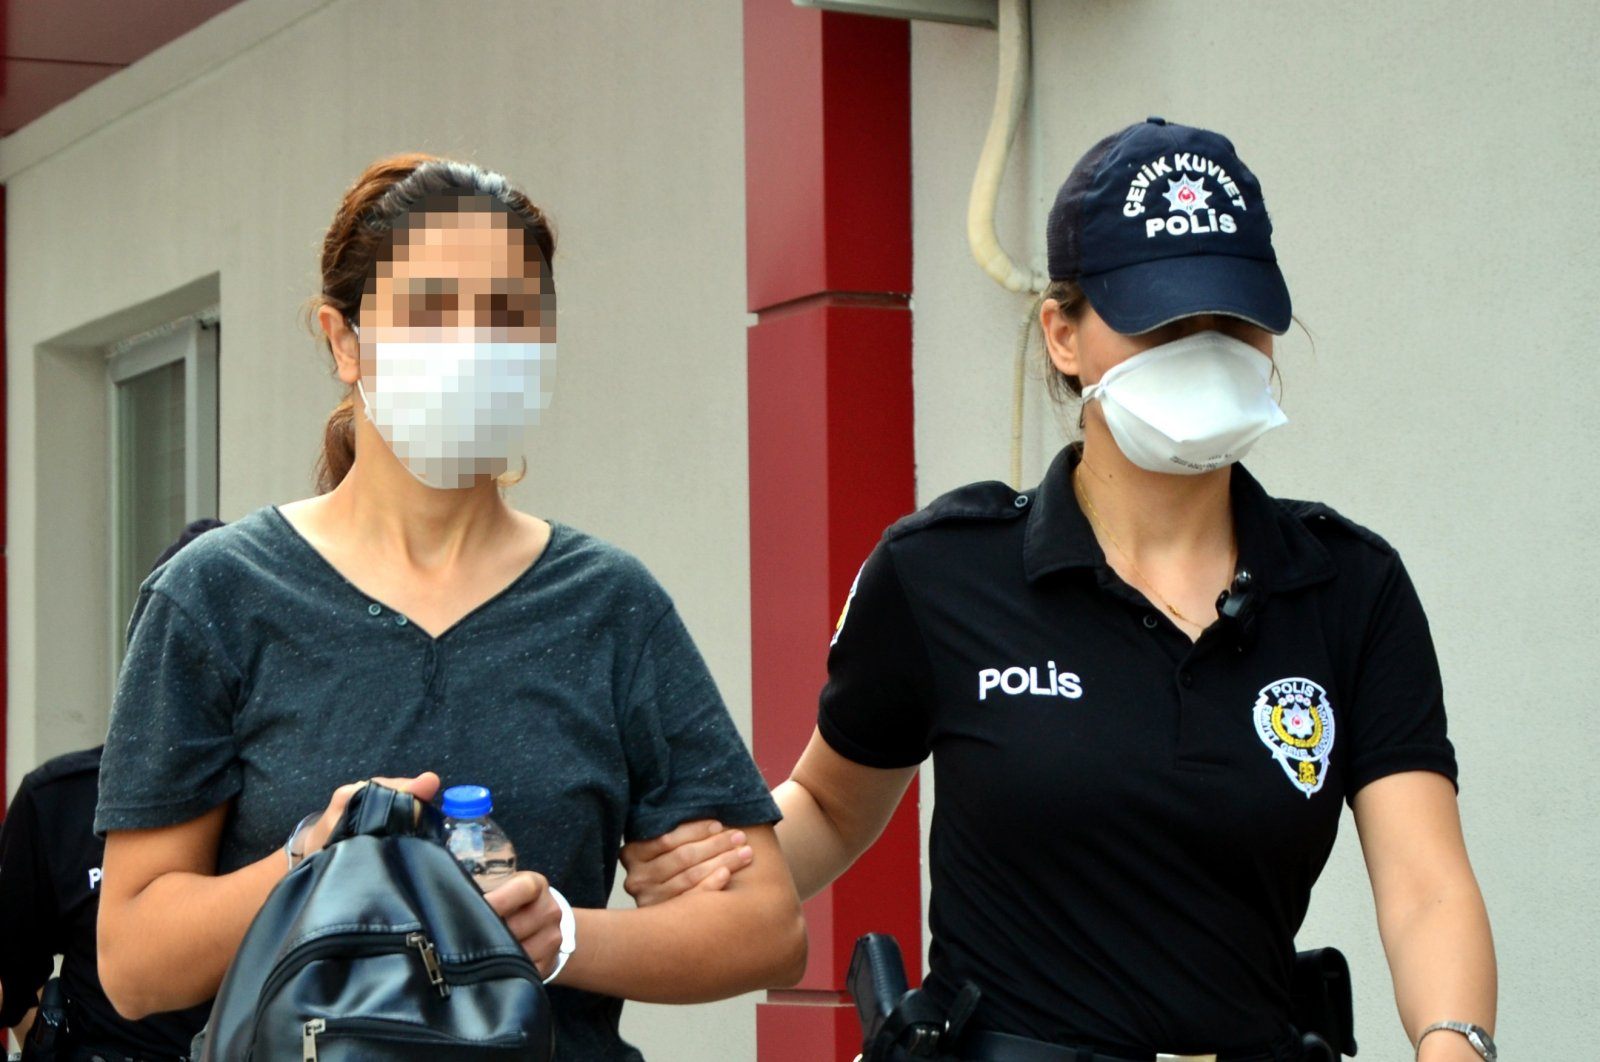 A police officer takes Zeynep T. to the police station in Adana, Turkey, Feb. 1, 2021. (DHA)